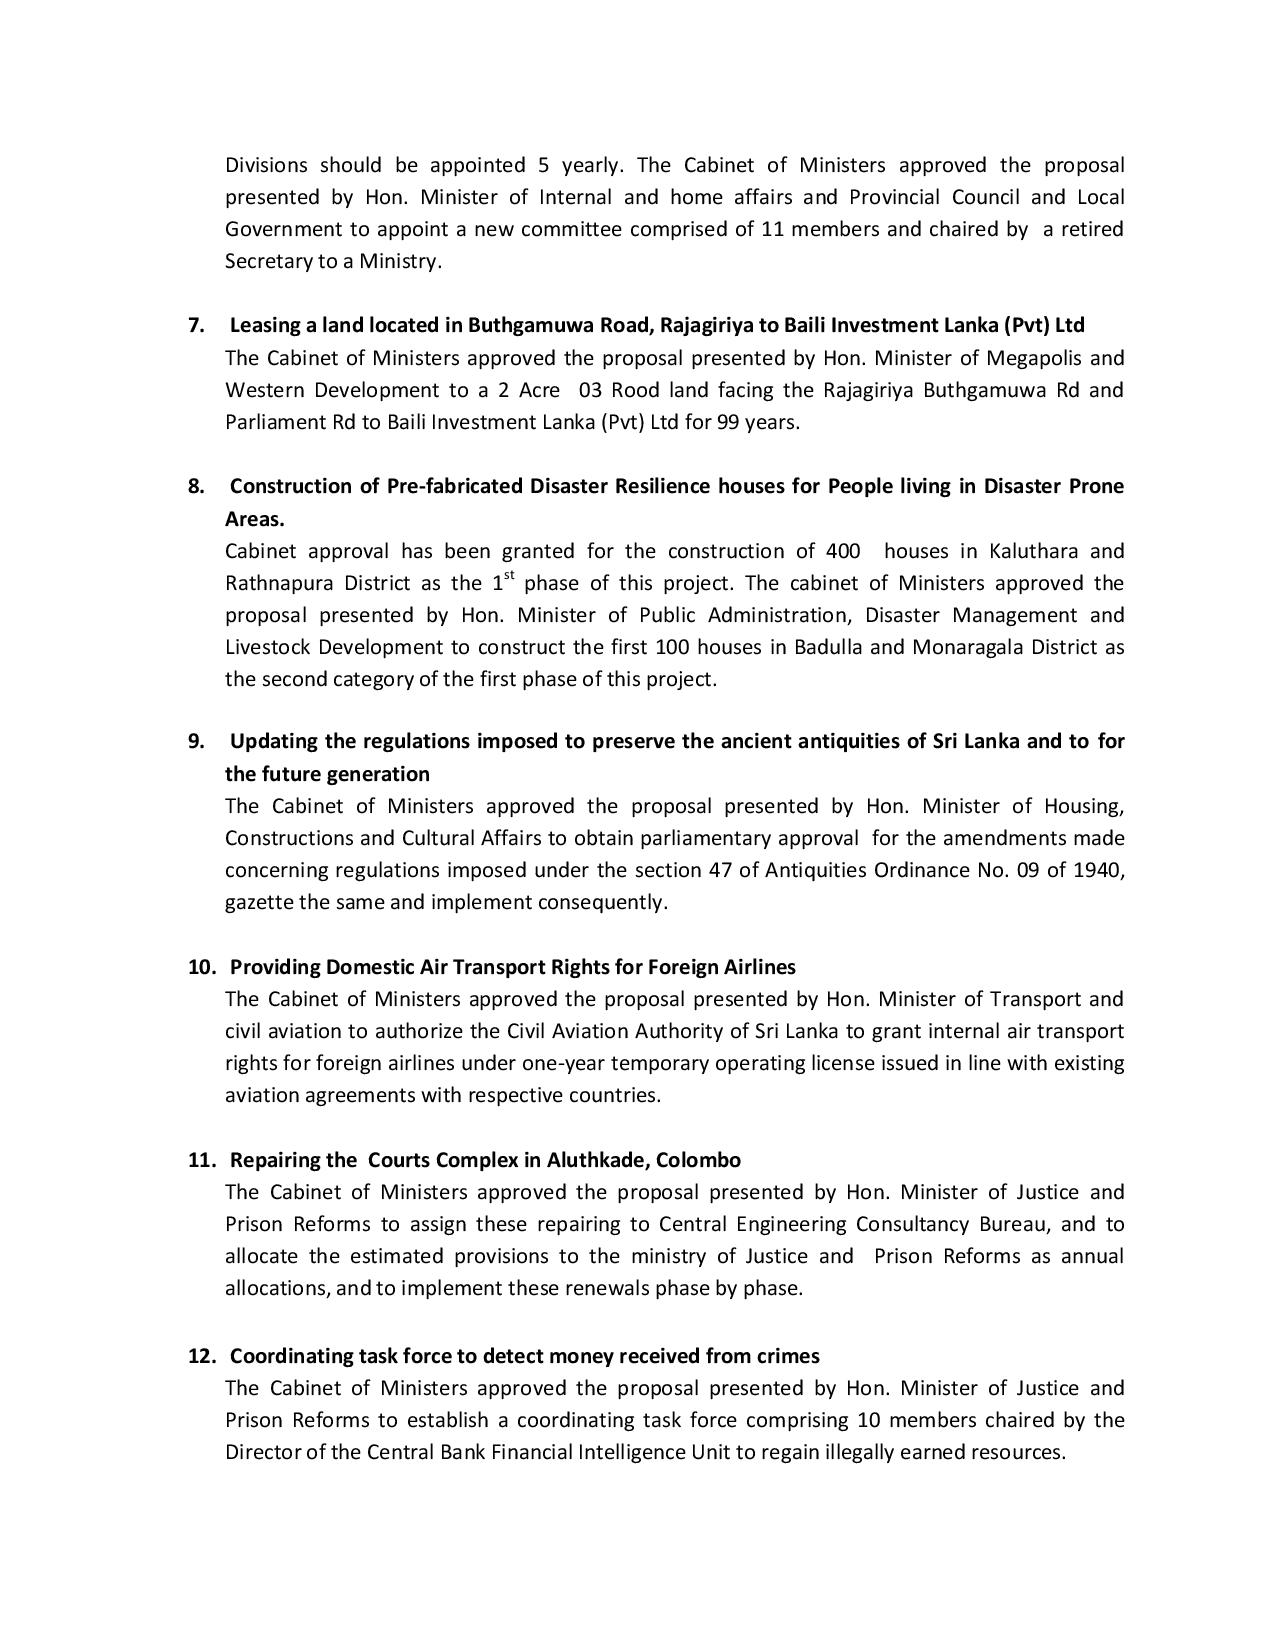 Decisions Taken by Cabinet of Ministers on theE 01.10.2019 page 002